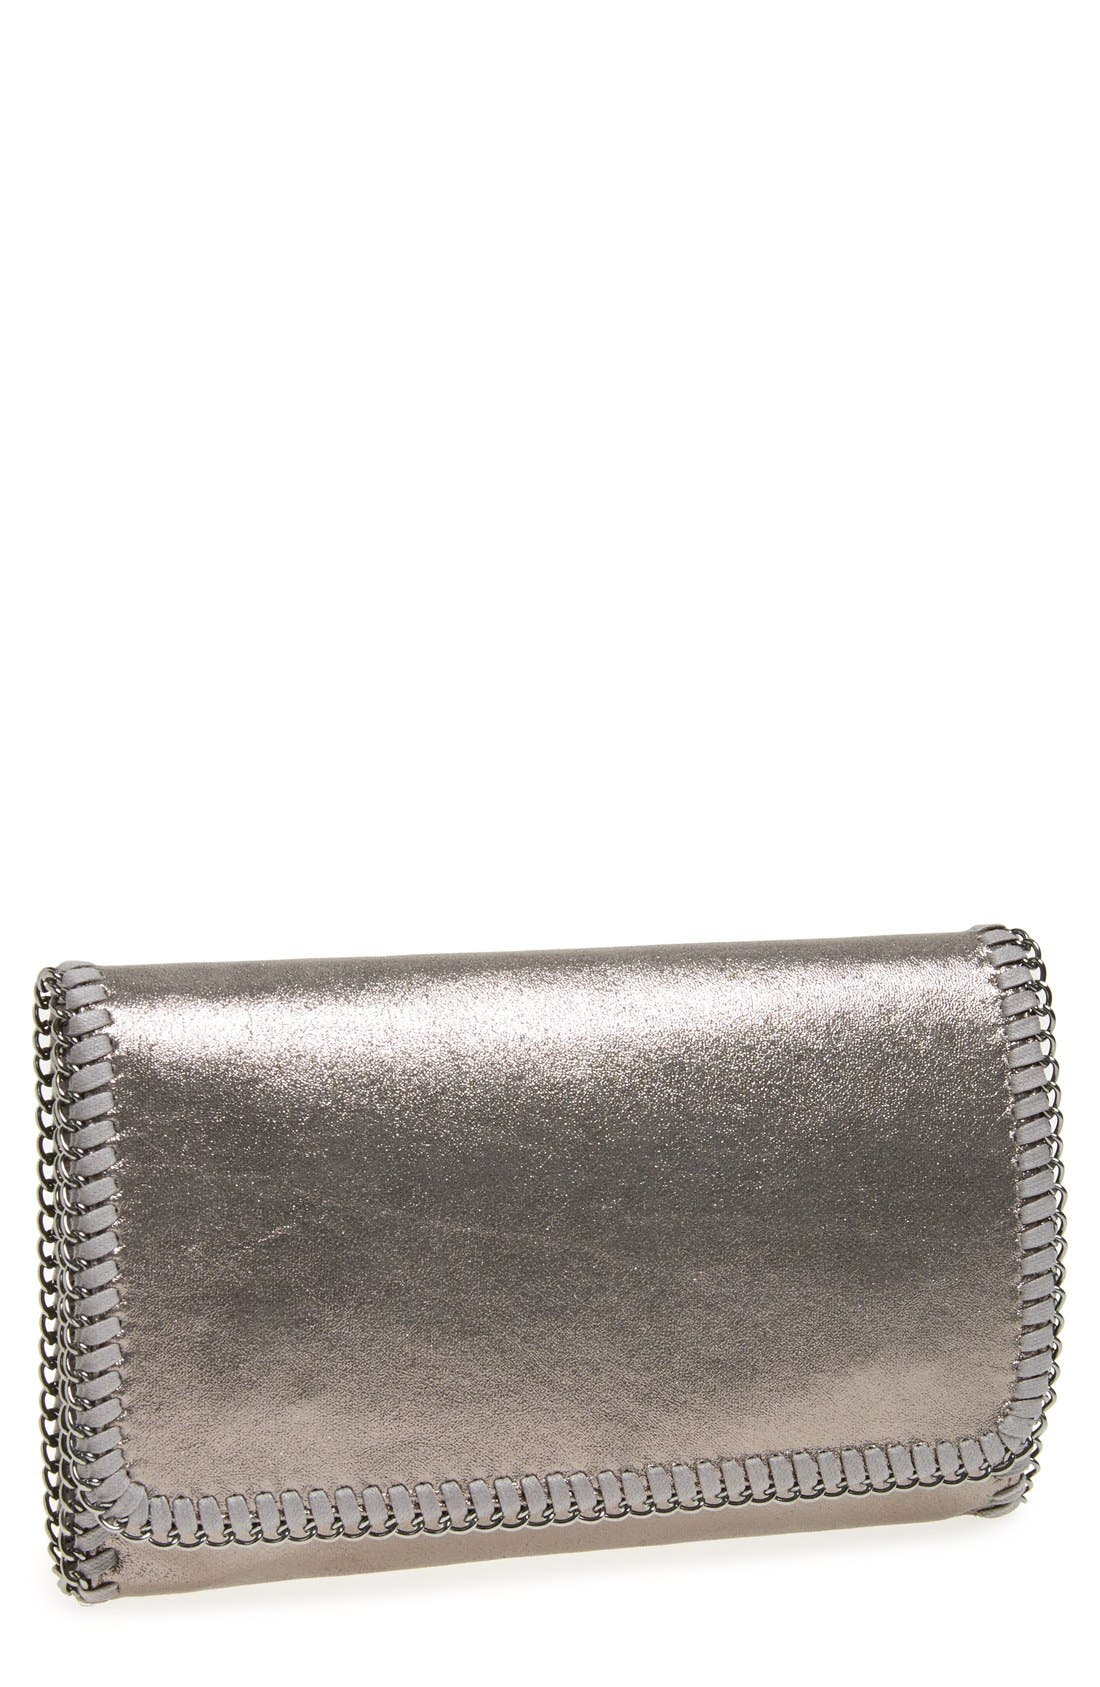 Alternate Image 1 Selected - Phase 3 'Metallic Chain' Foldover Clutch